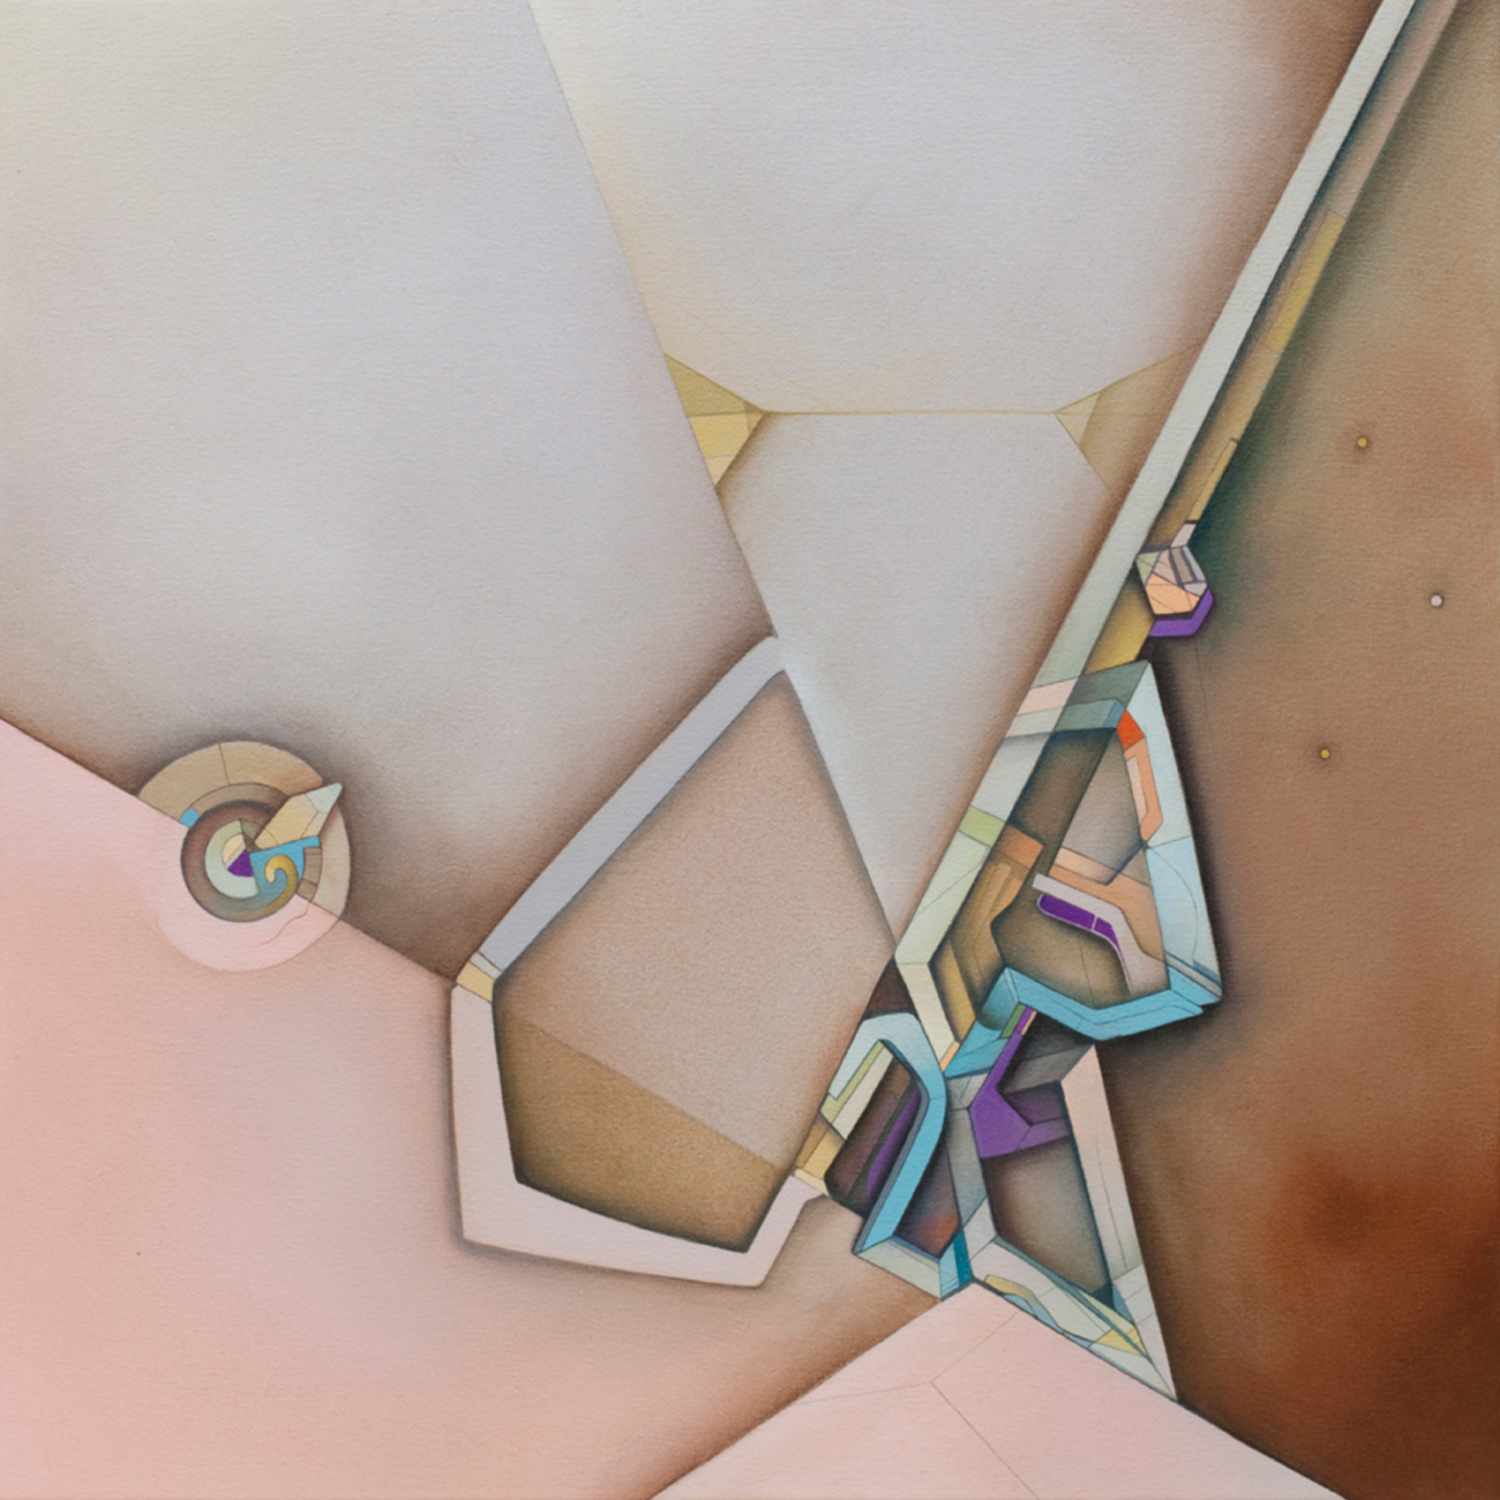 Capable Folds - Acrylic on Canvas 24 in. x 24 in. (2011)